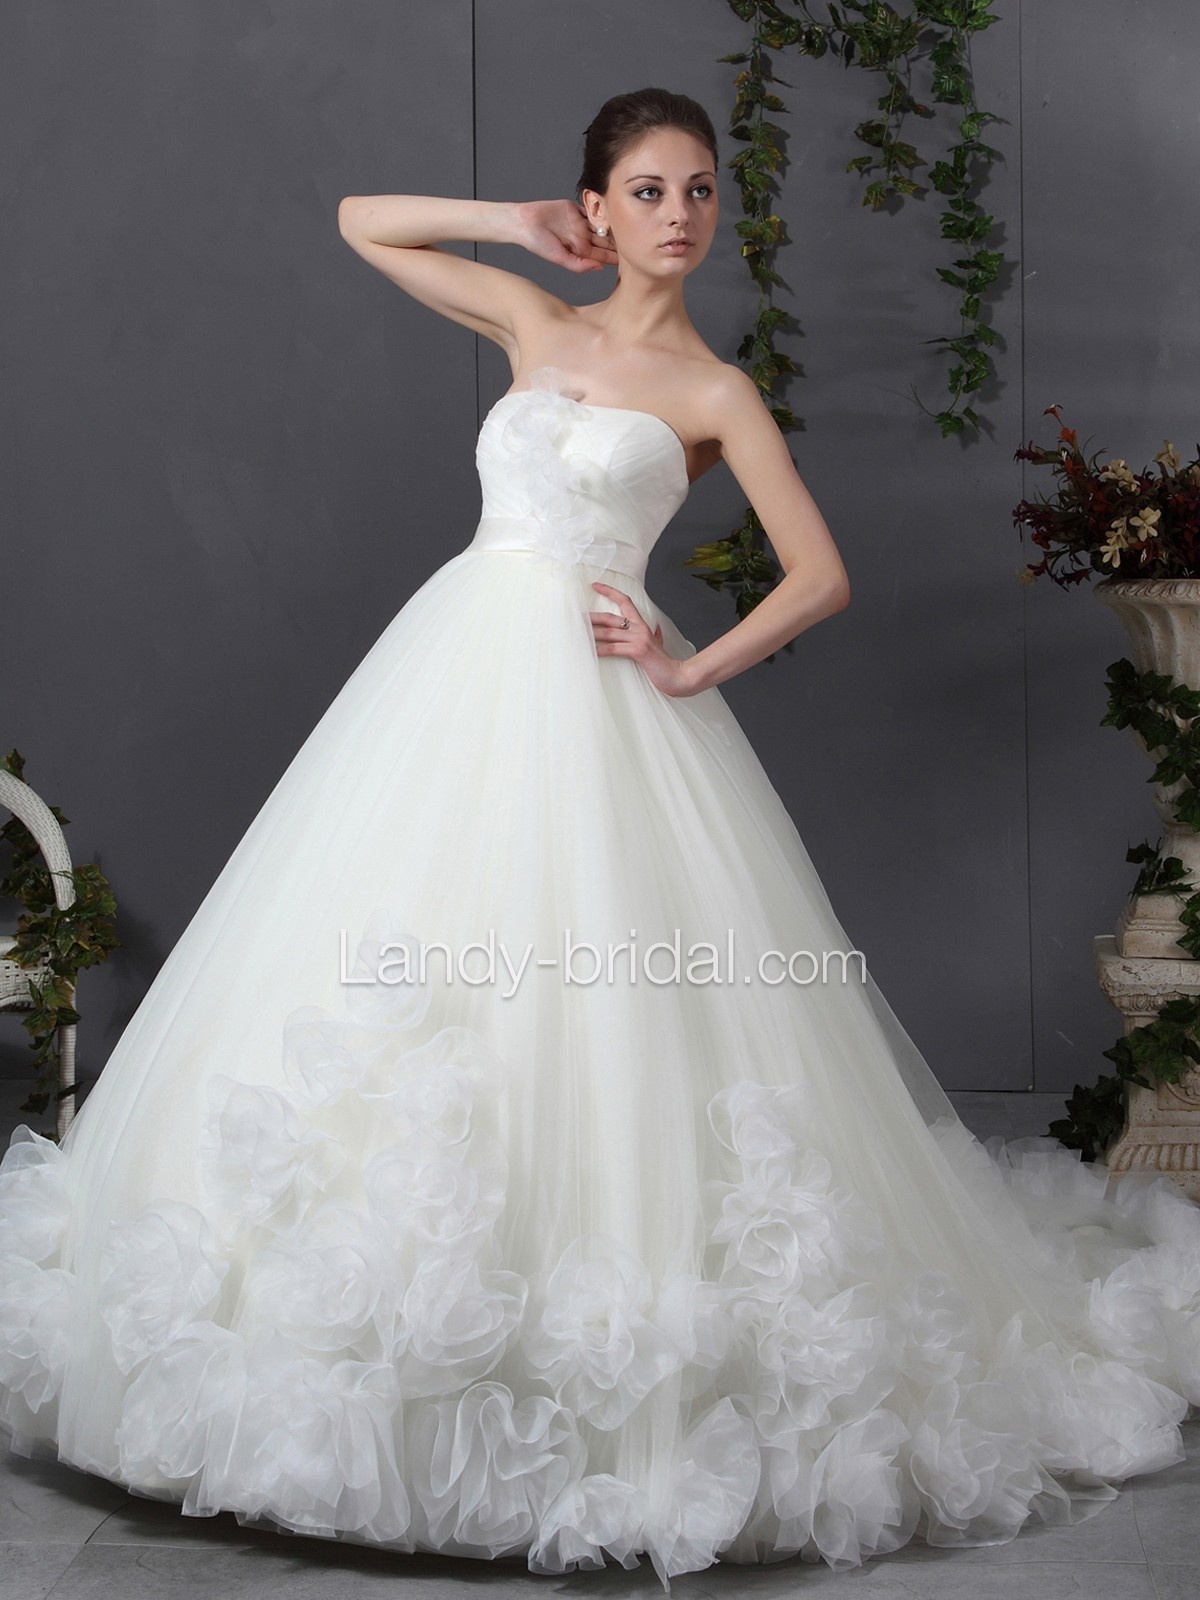 Wedding the world wedding dresses for girls for Girls dresses for a wedding